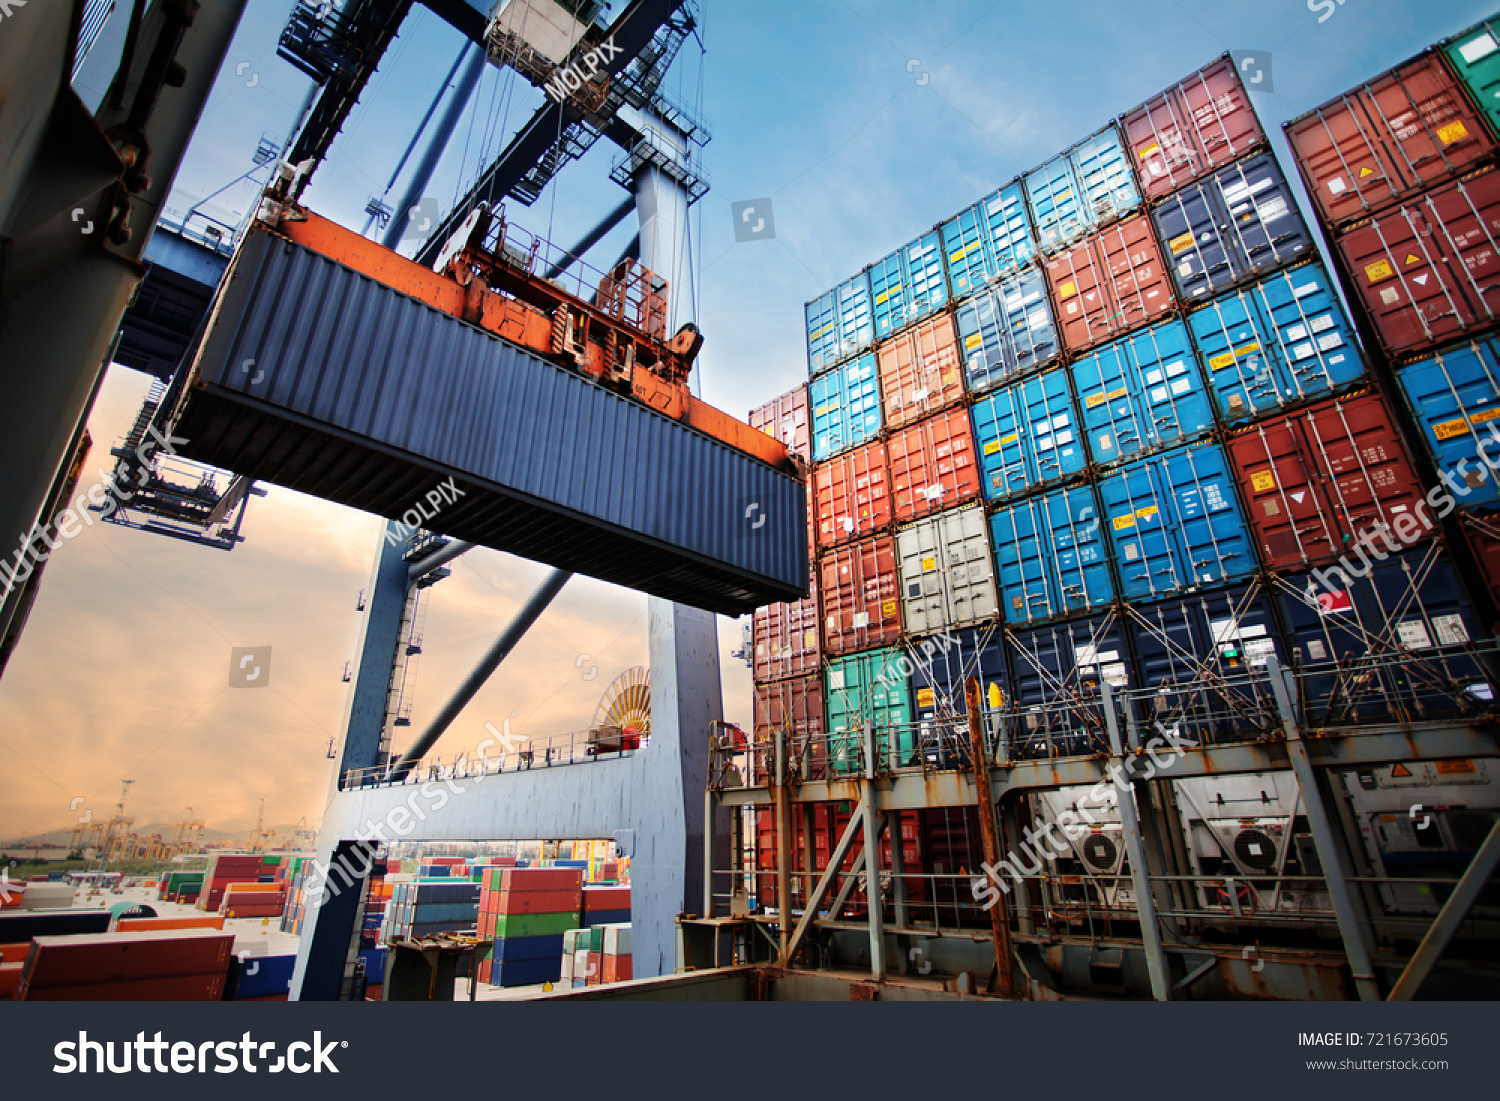 Container loading in a Cargo freight ship with industrial crane. Container ship in import and export business logistic company. Industry and Transportation concept. #721673605